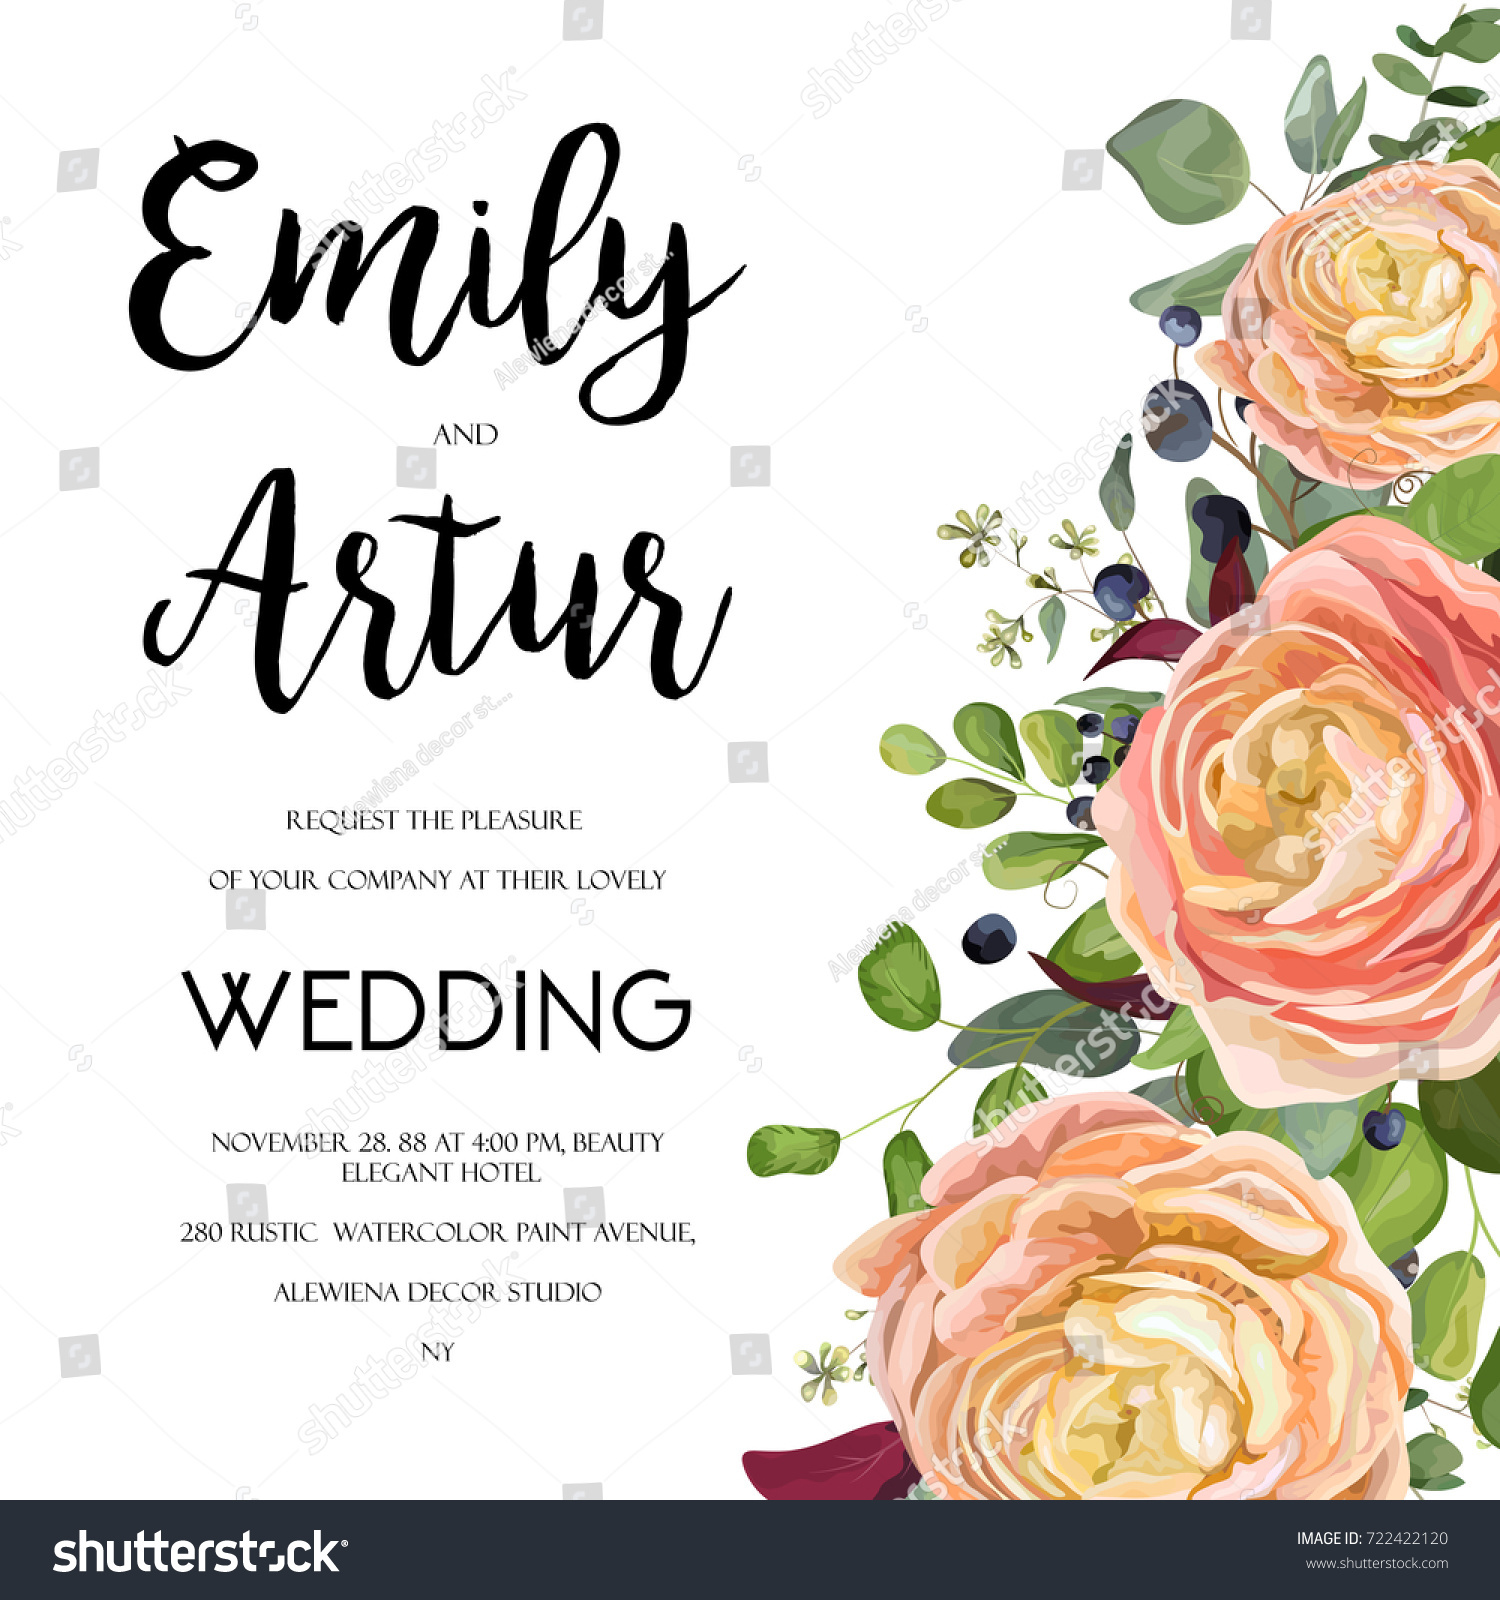 Wedding invitation invite card design watercolor stock vector wedding invitation invite card design with watercolor hand drawn pink peach rose ranunculus flower stopboris Images